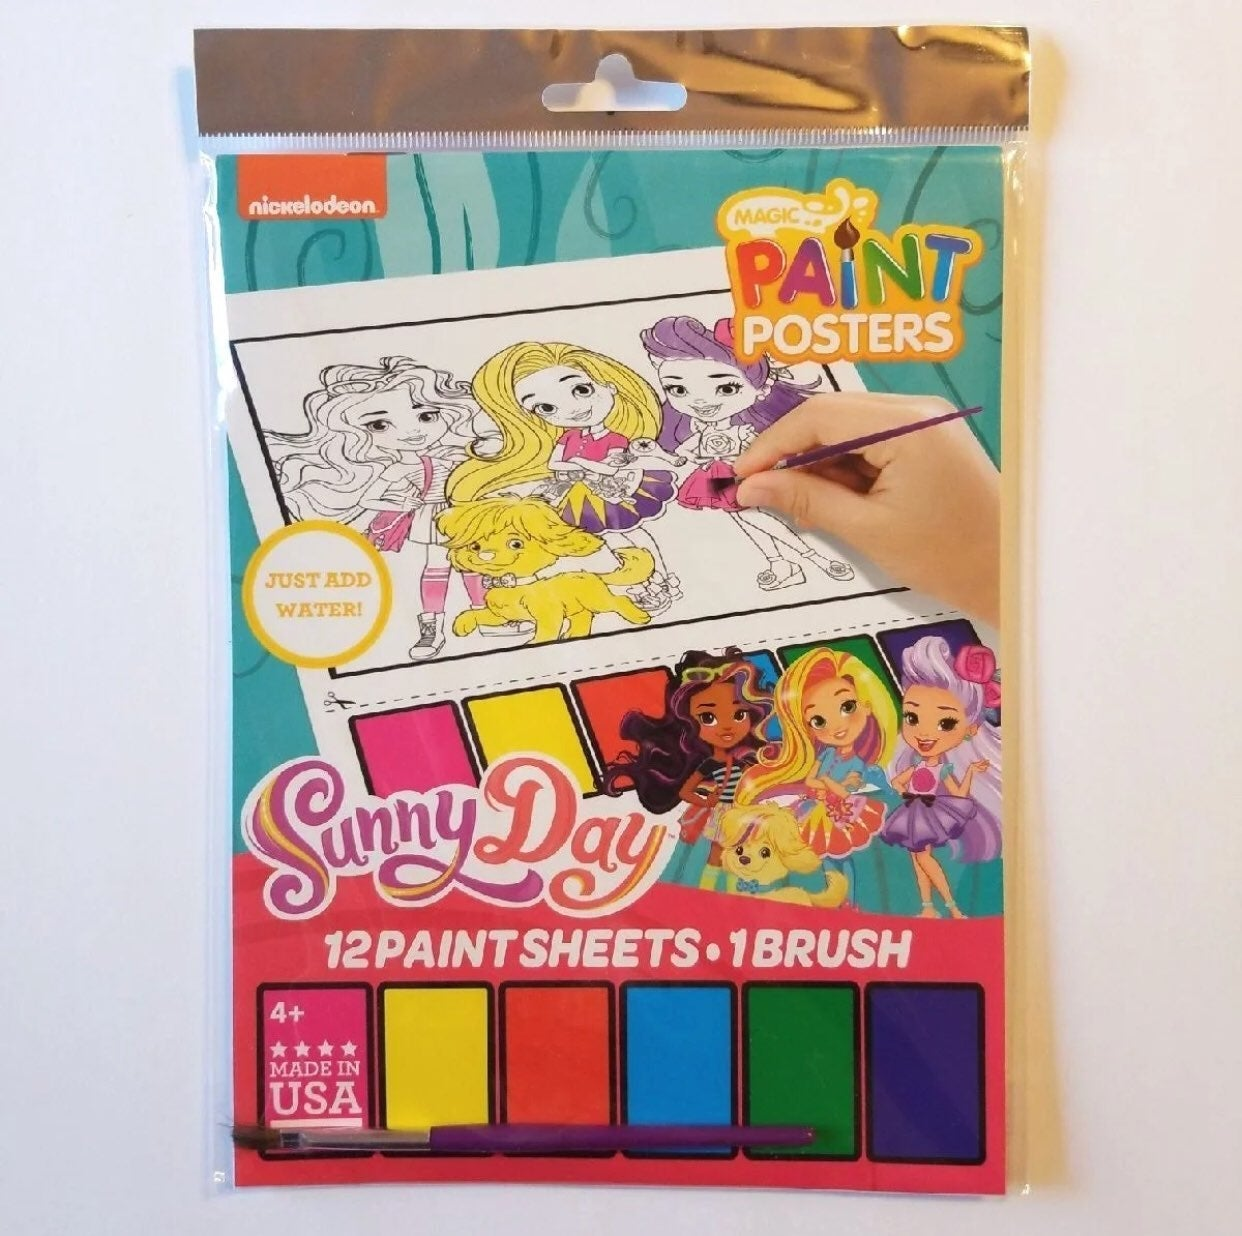 SUNNY DAY 12 PAINT POSTERS ACTIVITY SET